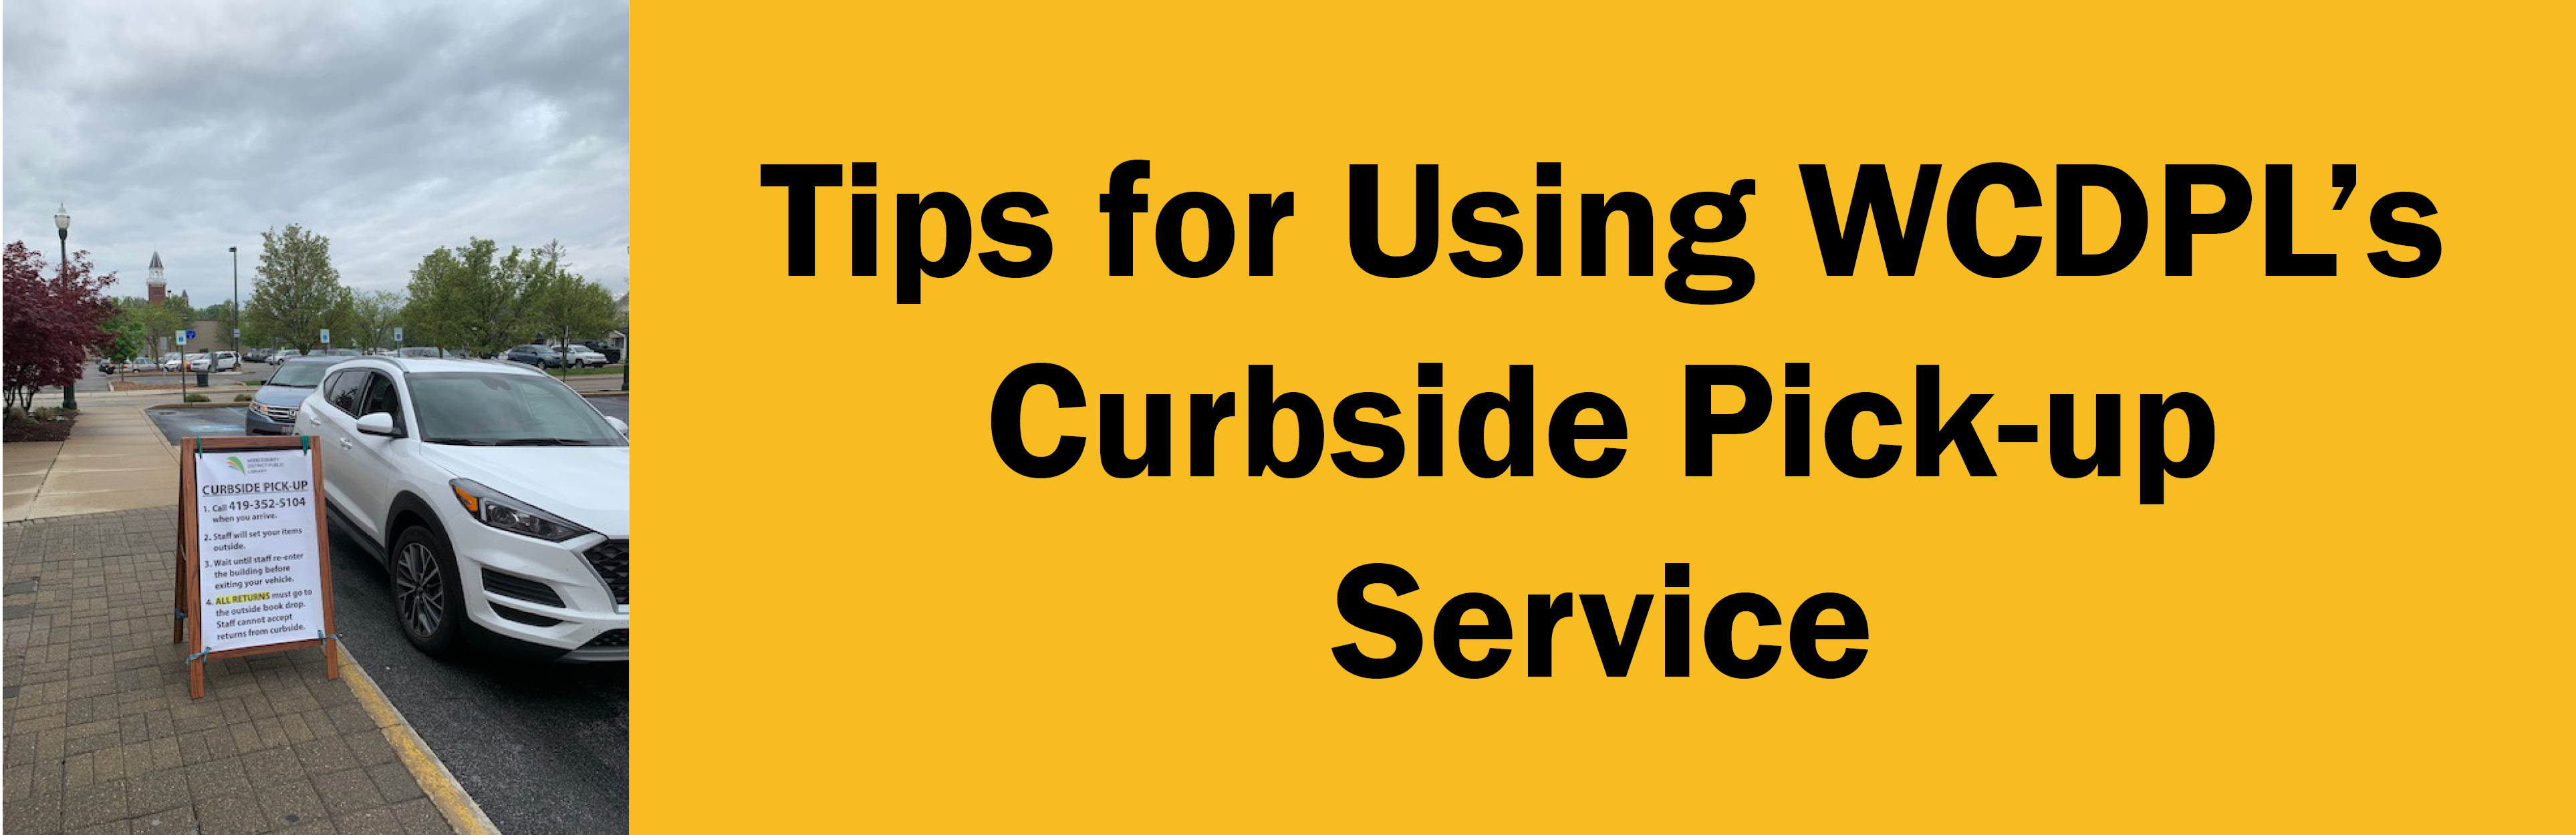 Curbside Service tips graphic